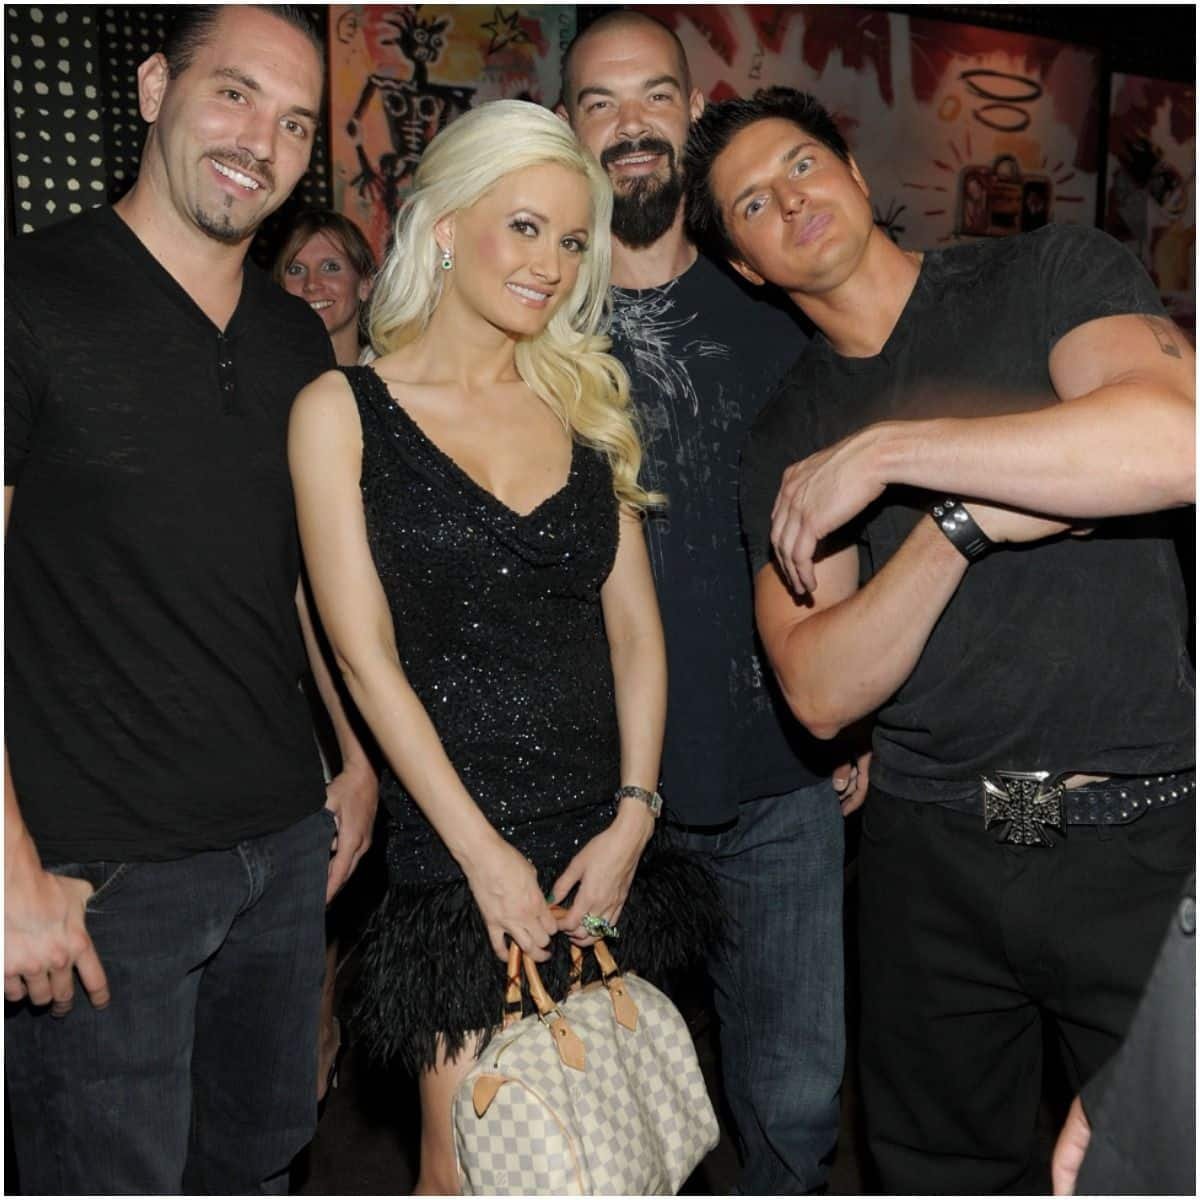 Zak Bagans and girlfriend Holly Madison